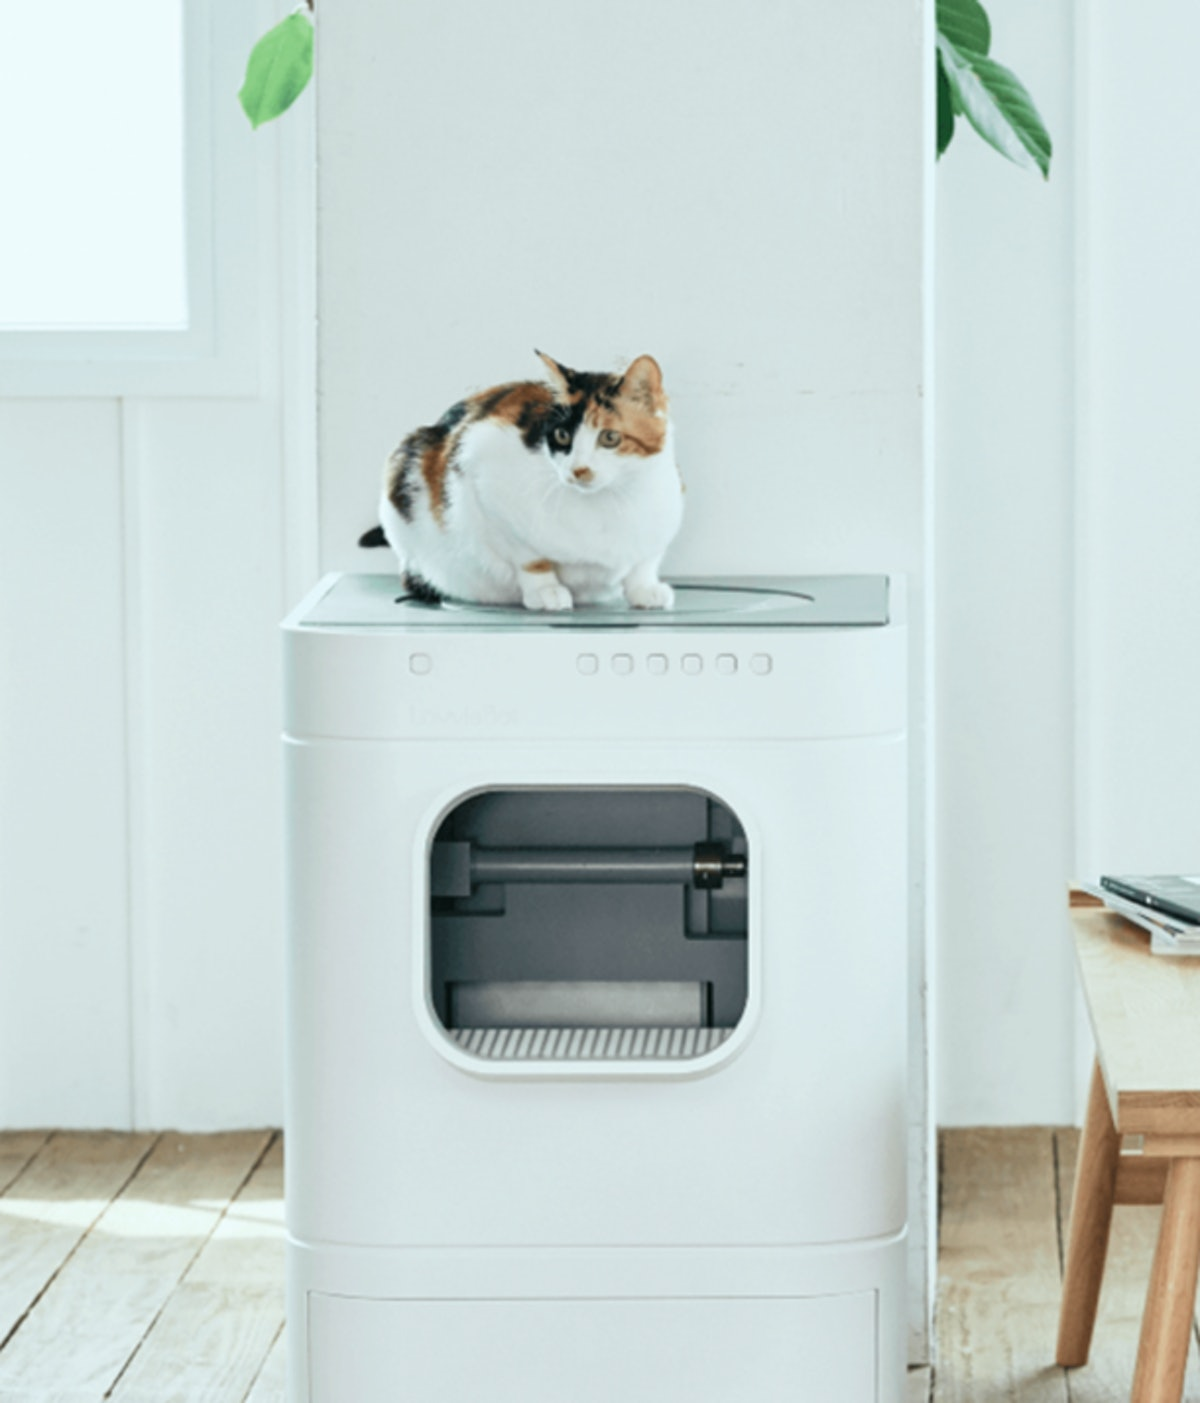 This Self-Cleaning Litter Box Can Do Some Pretty Impressive Tricks, Honestly